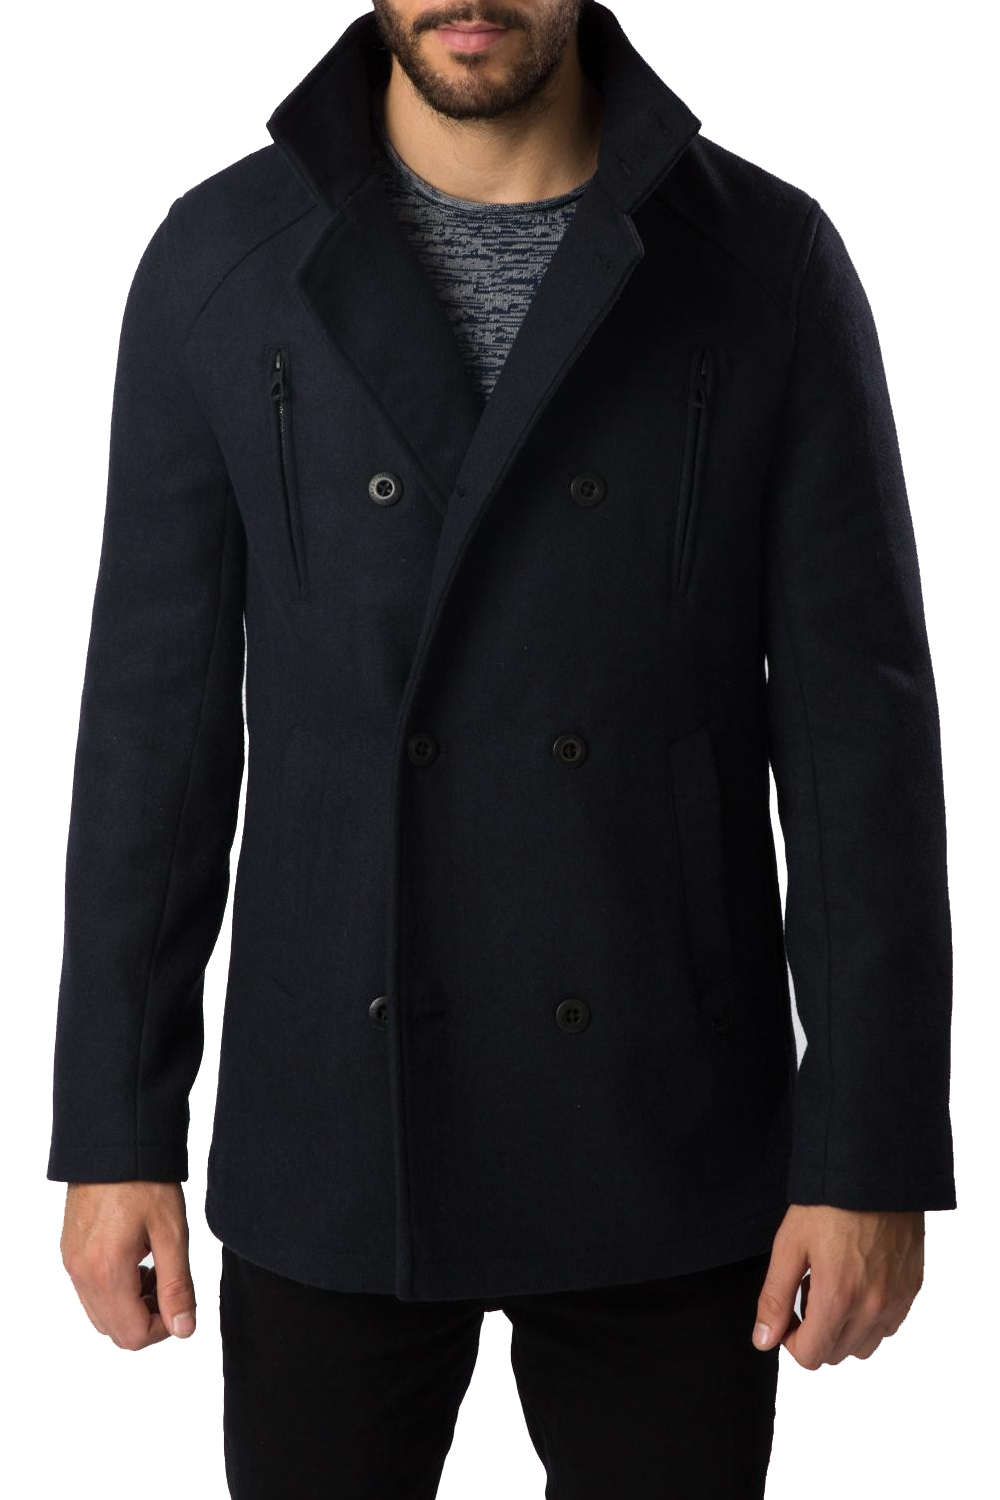 Threadbare Mens Wool Mix Jacket New Collared Double Breasted Lined ...